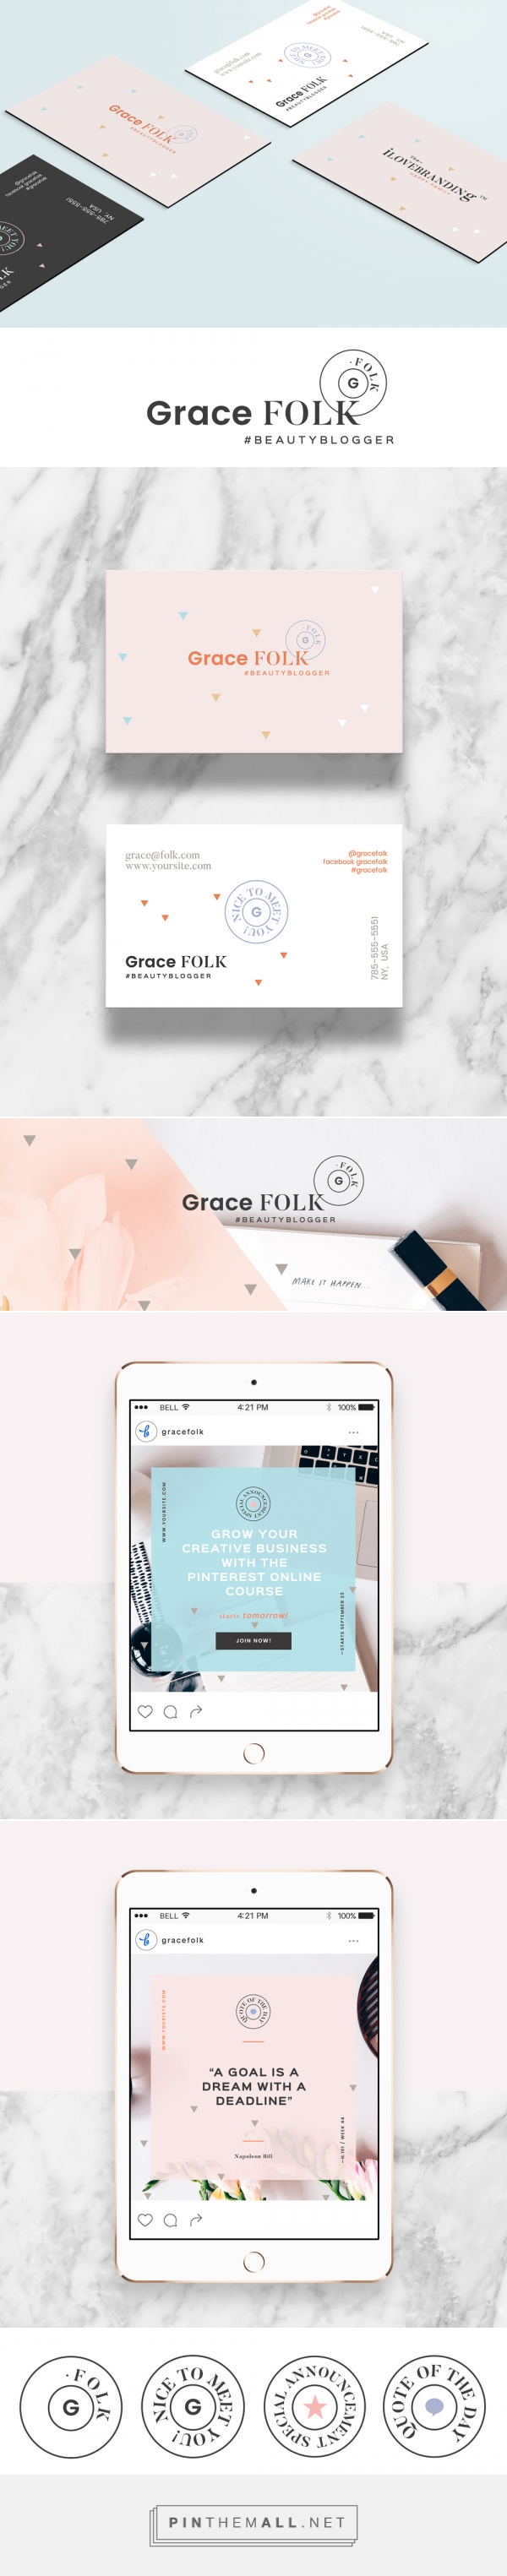 Mini Branding for Bloggers. Grace Folk Starter Kit - Everything you need to start a blog or small business ( logos, badges, social media headers, blog post templates, etc. All in the pack! A must-have for brand new bloggers. Get your starter kit now! 49$